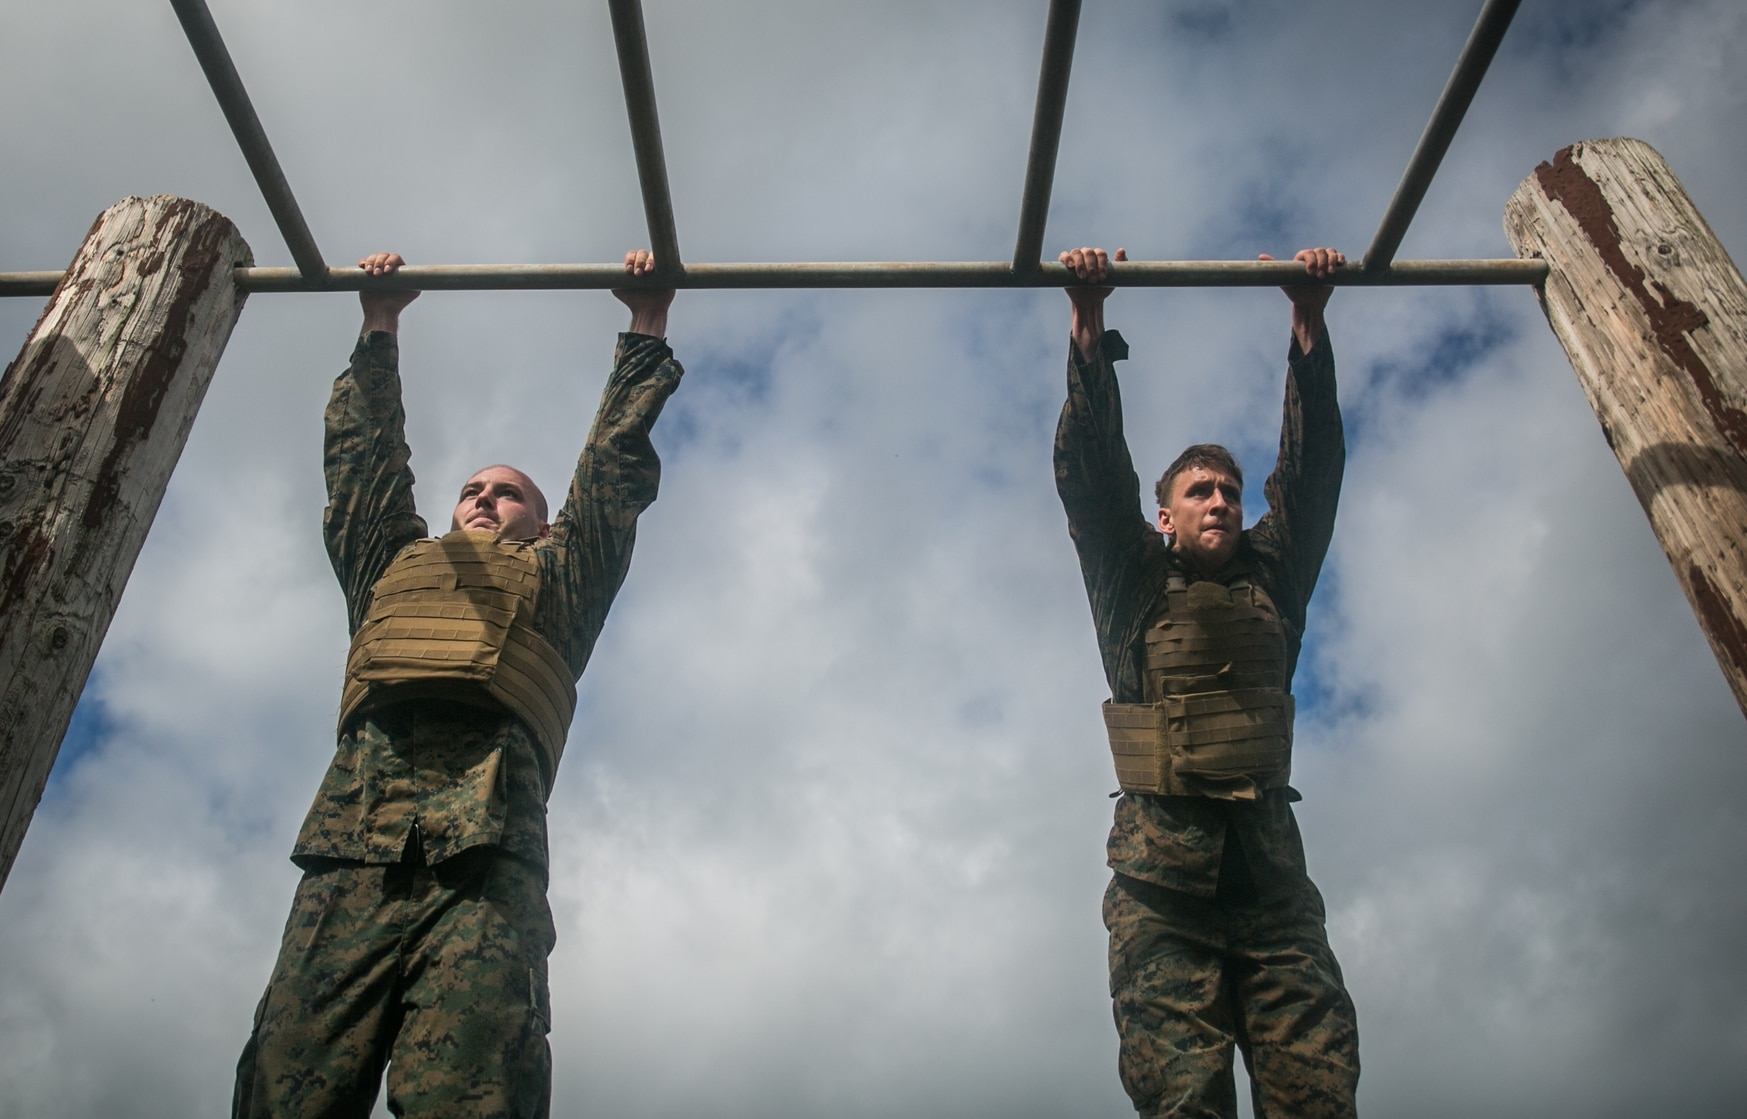 Sgt. Brett Rocca, from Little Rock, California and Cpl. Jeffrey Spangler, from Leavenworth, Kansas, both assigned to Martial Arts Instructor Course 1-17, work together to complete a obstacle course during a MAIC aboard Marine Corps Base Hawaii, Dec. 15, 2016. (Sgt. Brittney Vella/Marine Corps)